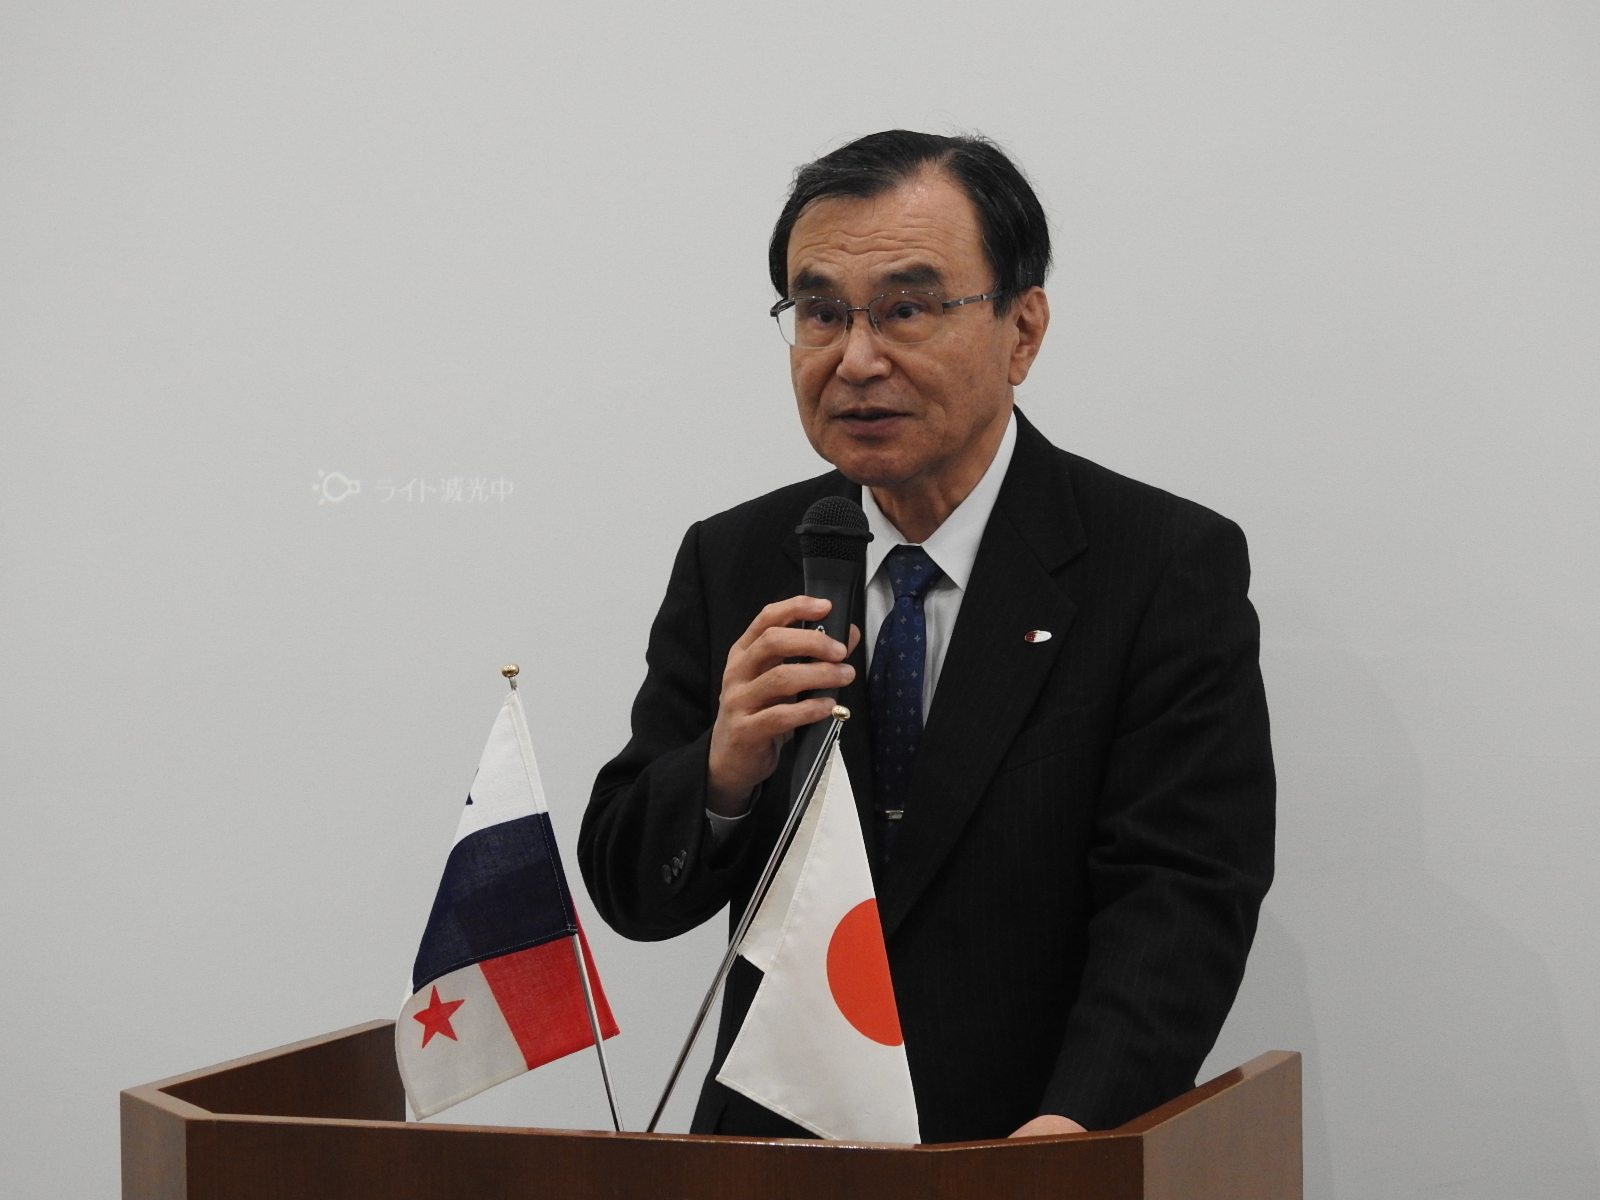 Mr. Takeshi Tokuhisa, President of Chiba University